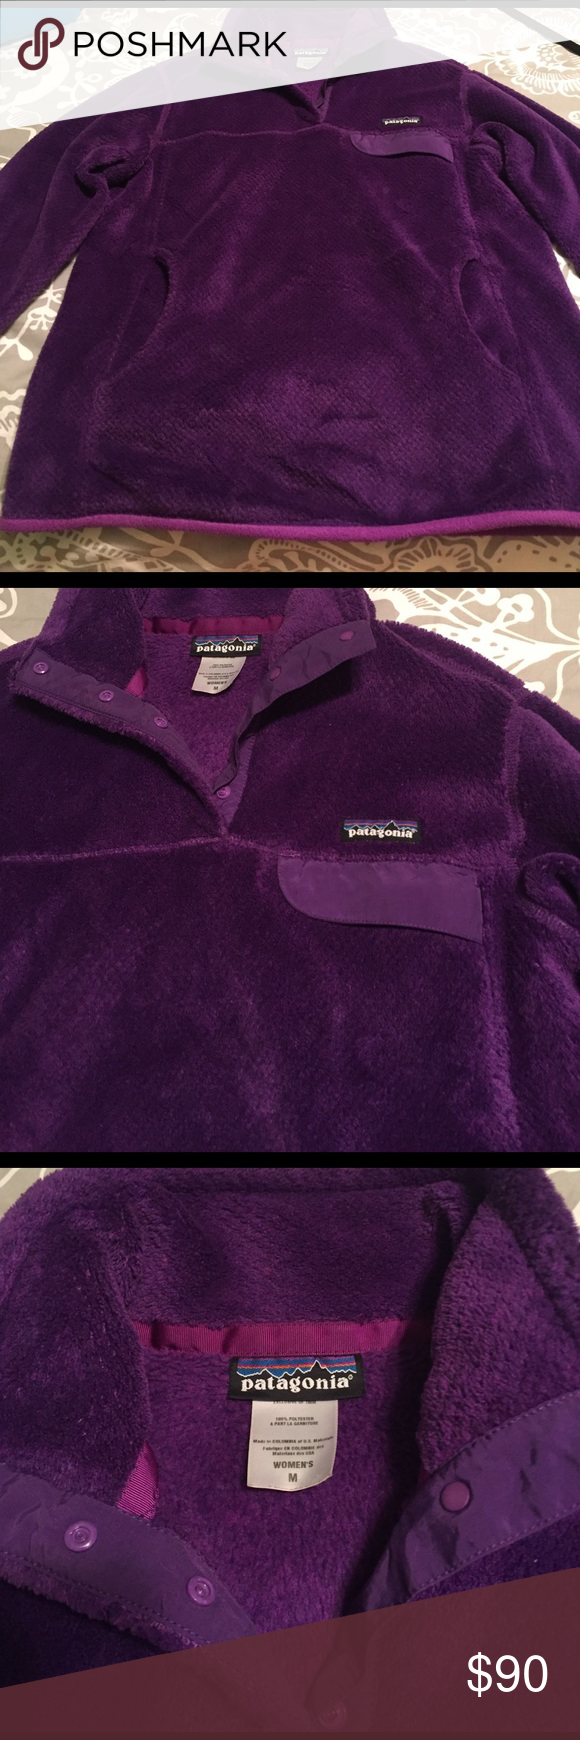 Patagonia Re-Tool Snap-T Fleece Pullover This warm, quintessential pullover has feminine seaming, a pouch-style handwarmer pocket and is made with Polartec® Thermal Pro® polyester fleece. Size medium. chest: 36-37 waist: 29.5-30.5 hip: 38.5-39.5. brilliant regal purple color. like-new; worn very few times. Reasonable offers are welcomed! Patagonia Tops Sweatshirts & Hoodies